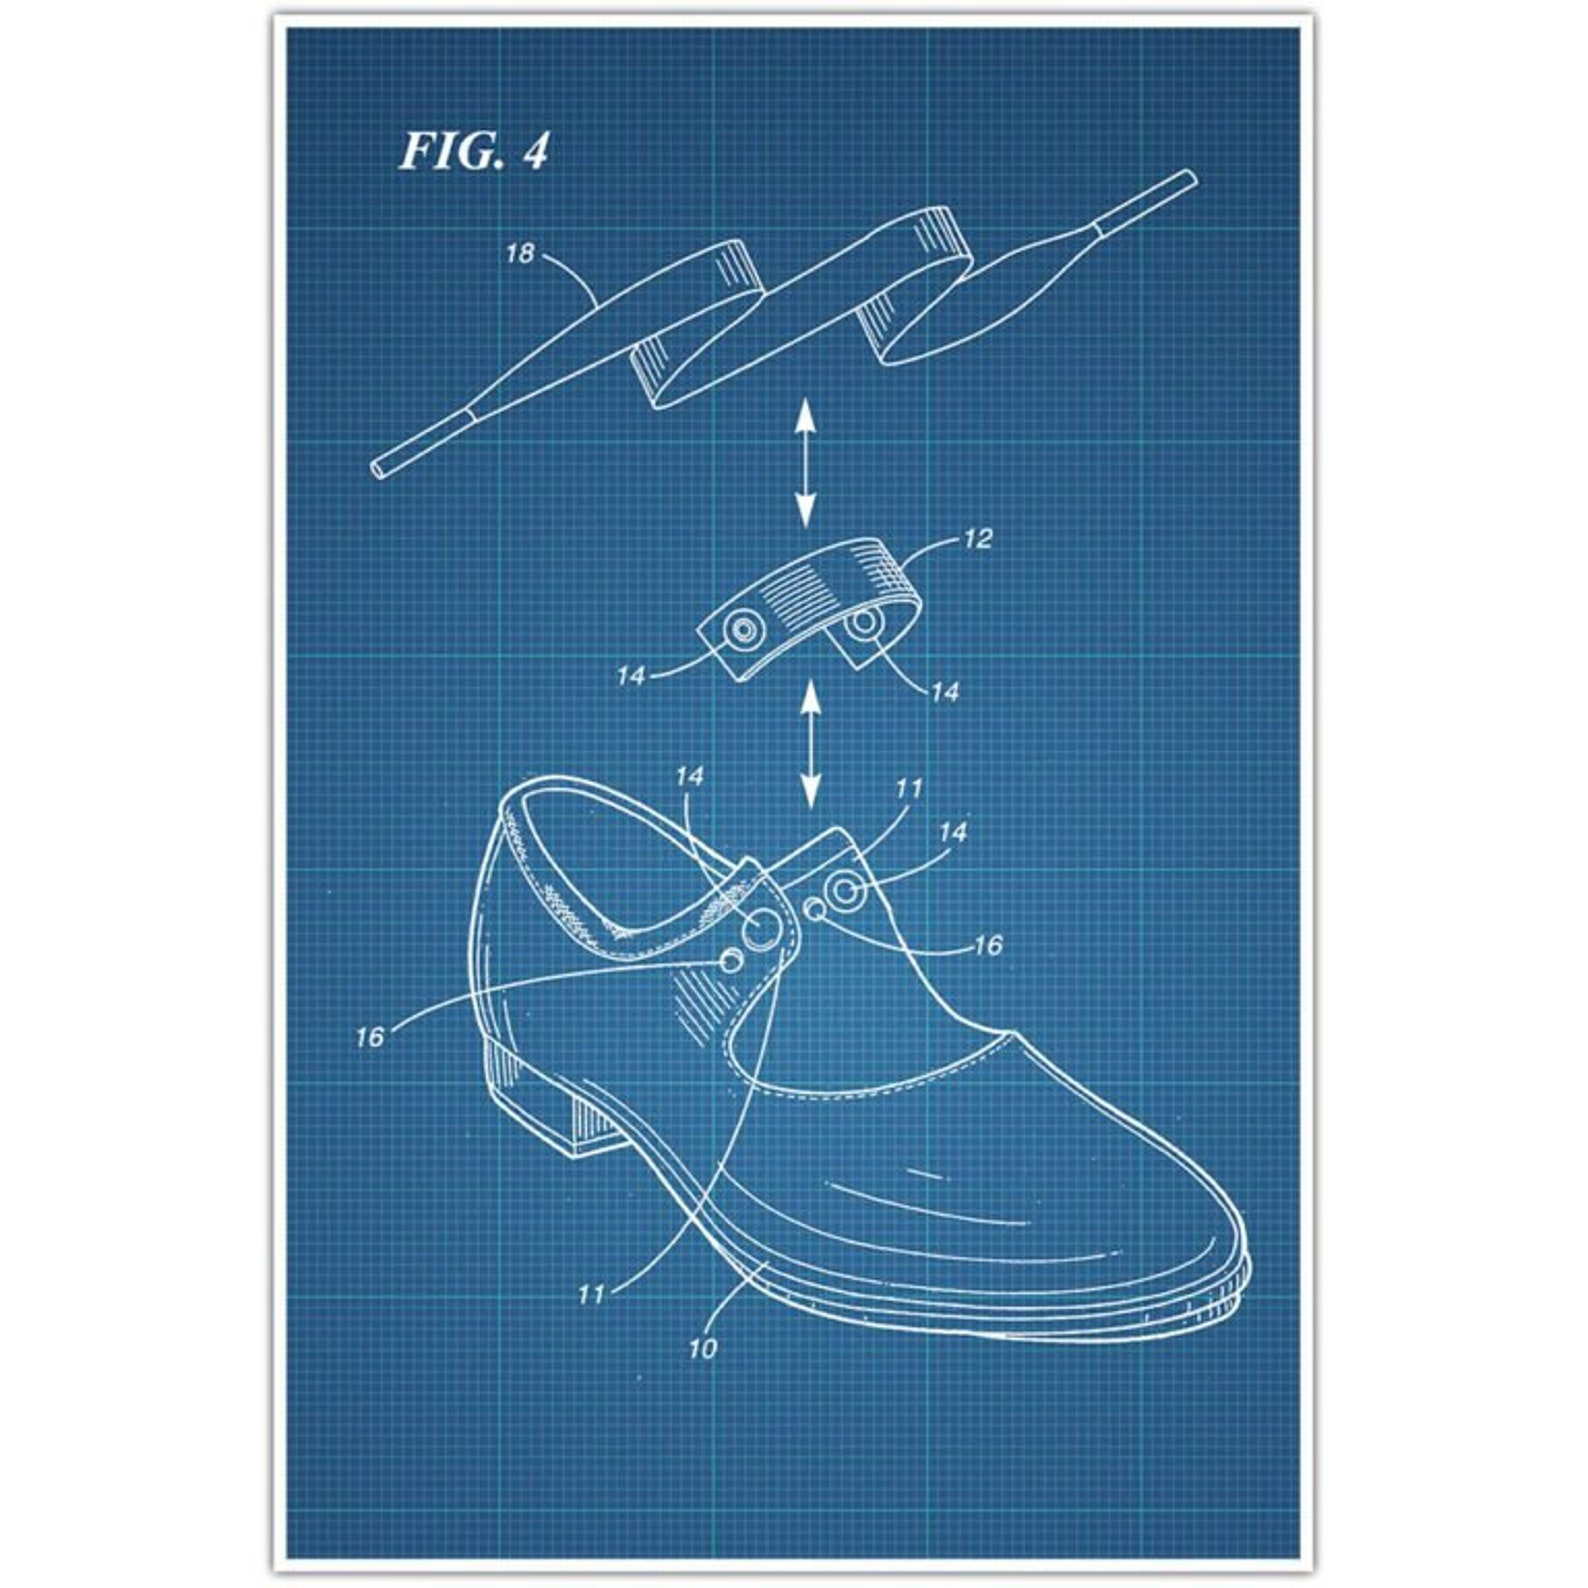 ballet tap shoes patent blueprint poster, ballerina photo art